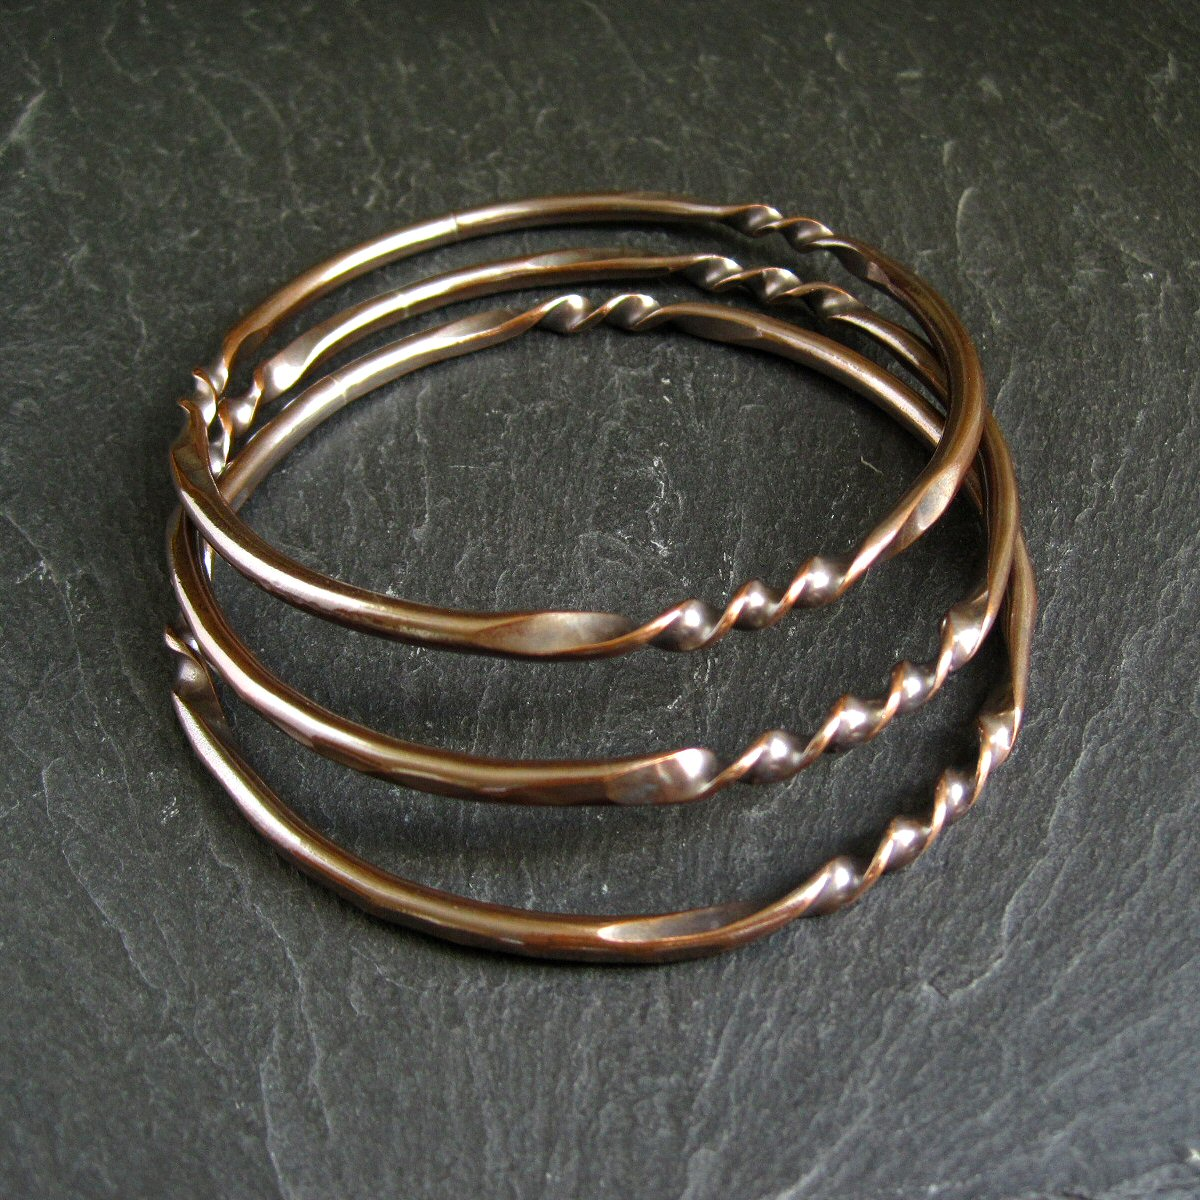 bangles gold abbott bangle lyon rose twist products bracelet